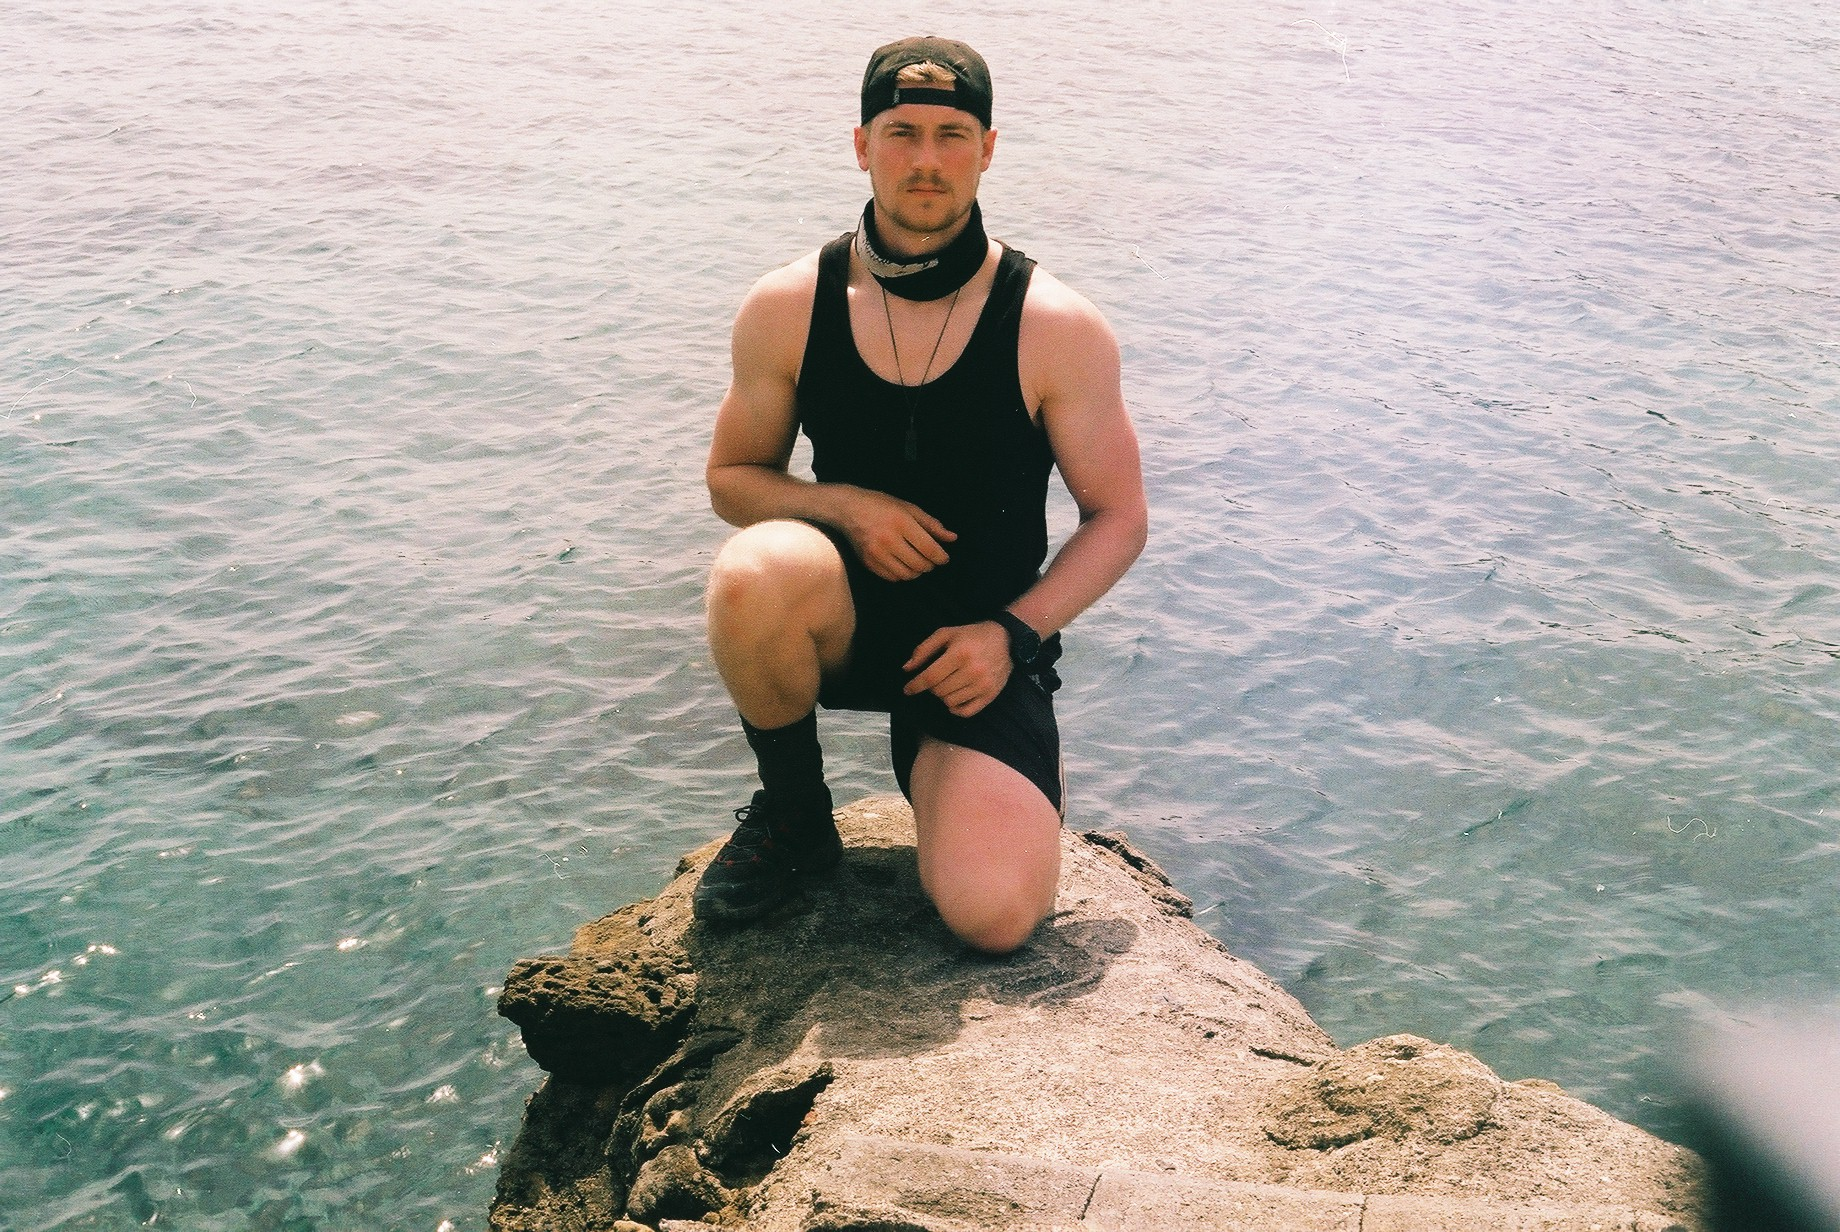 bicycle touring, bikepacking journalist, jack macgowan, bikepacking blog, north cyprus, go north cyprus, cyprus, travel journalist, travel photographer, 35mm, film camera, shoot film, film photography, photography, sea, blue sea, surly, surly bikes, ear, travel blog, travel website, linked